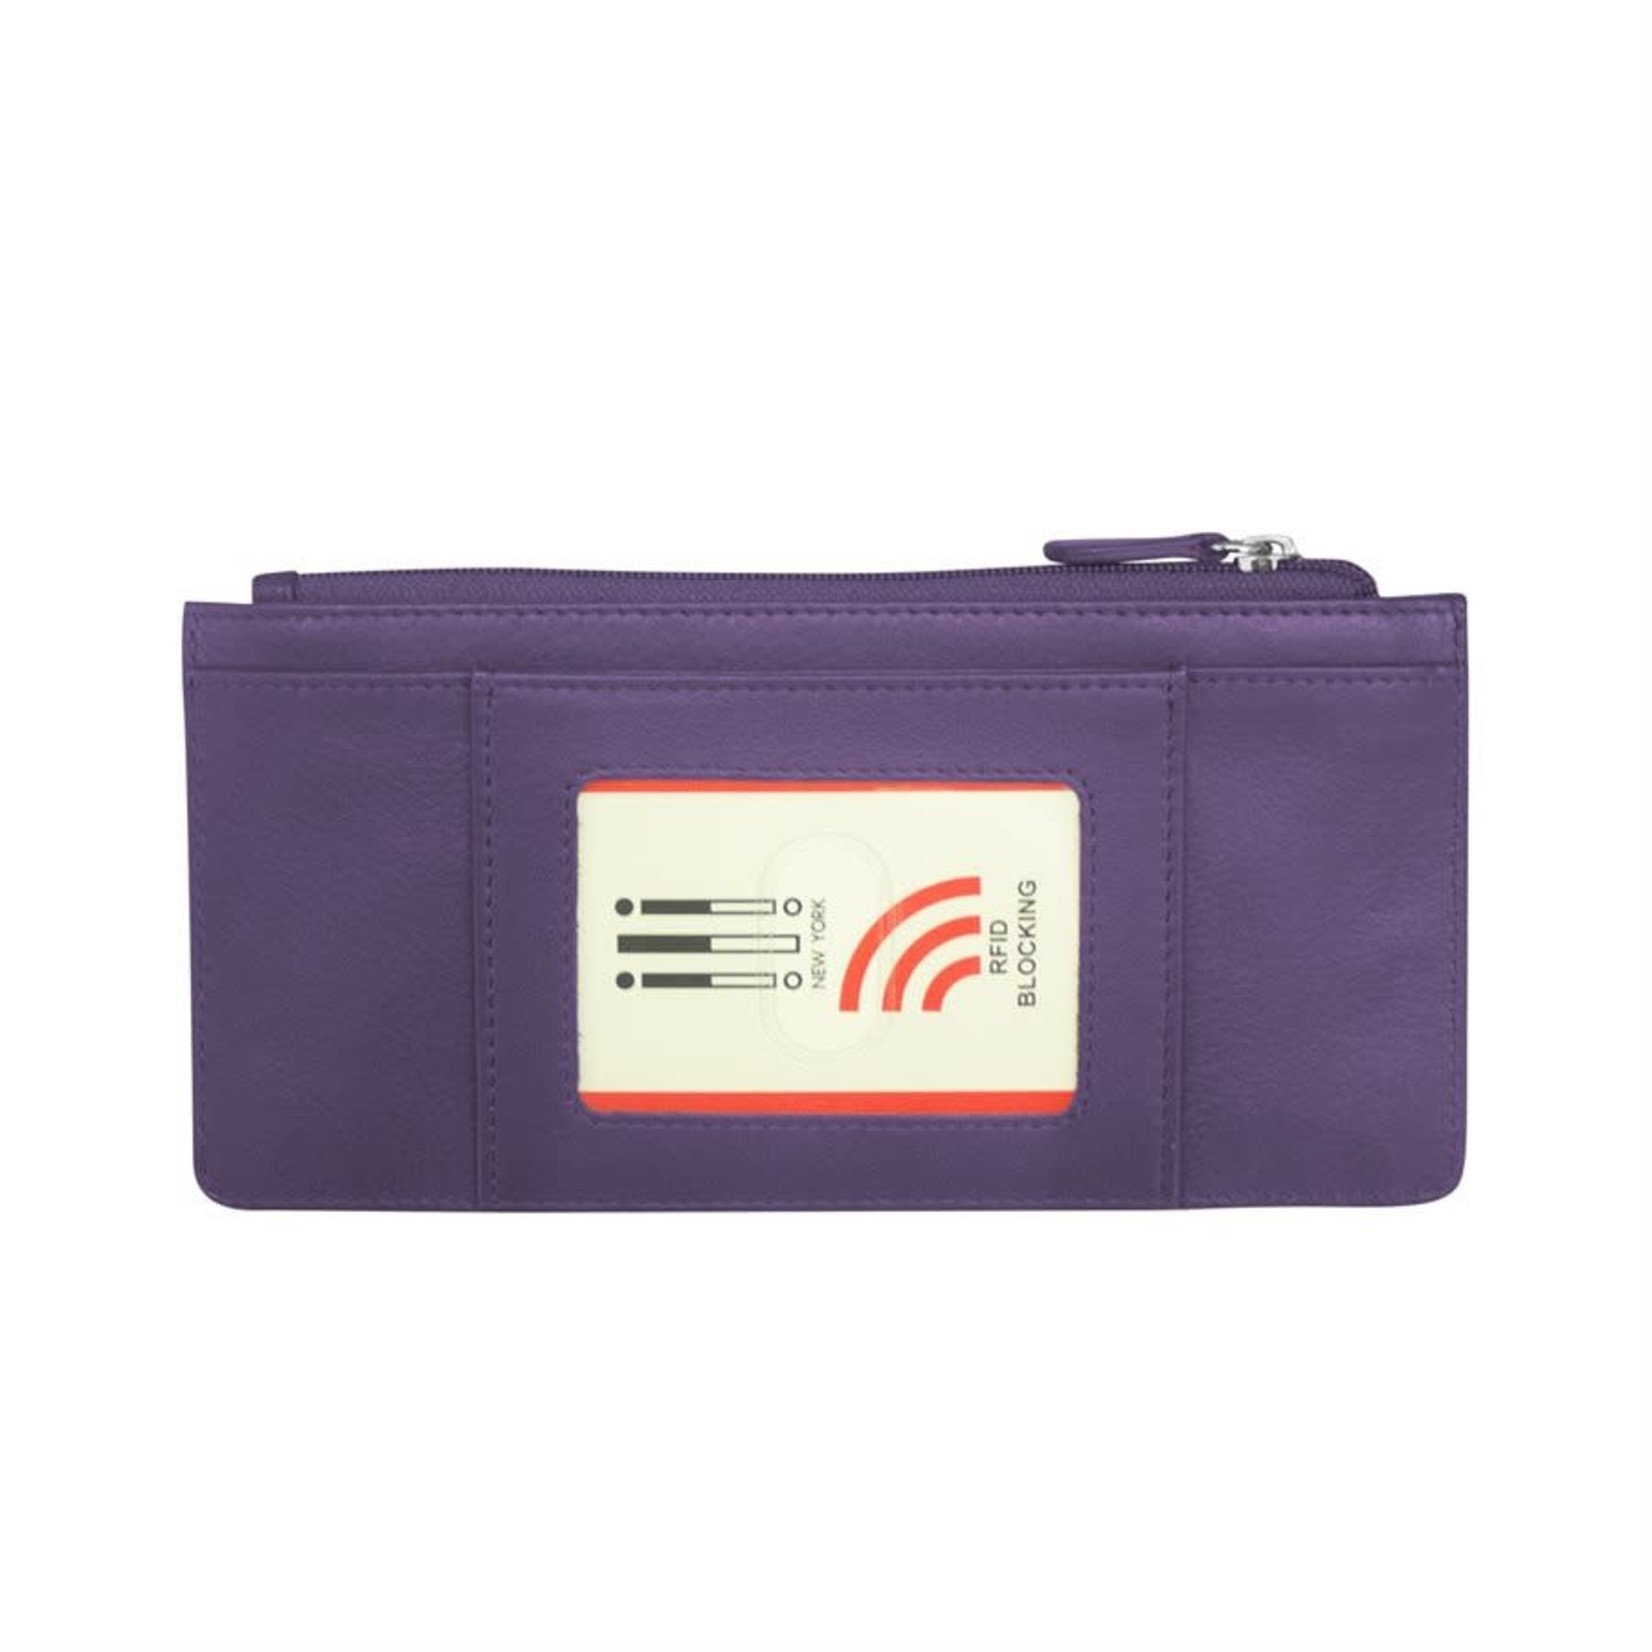 Leather Handbags and Accessories 7306 Purple - RFID Credit Card Wallet